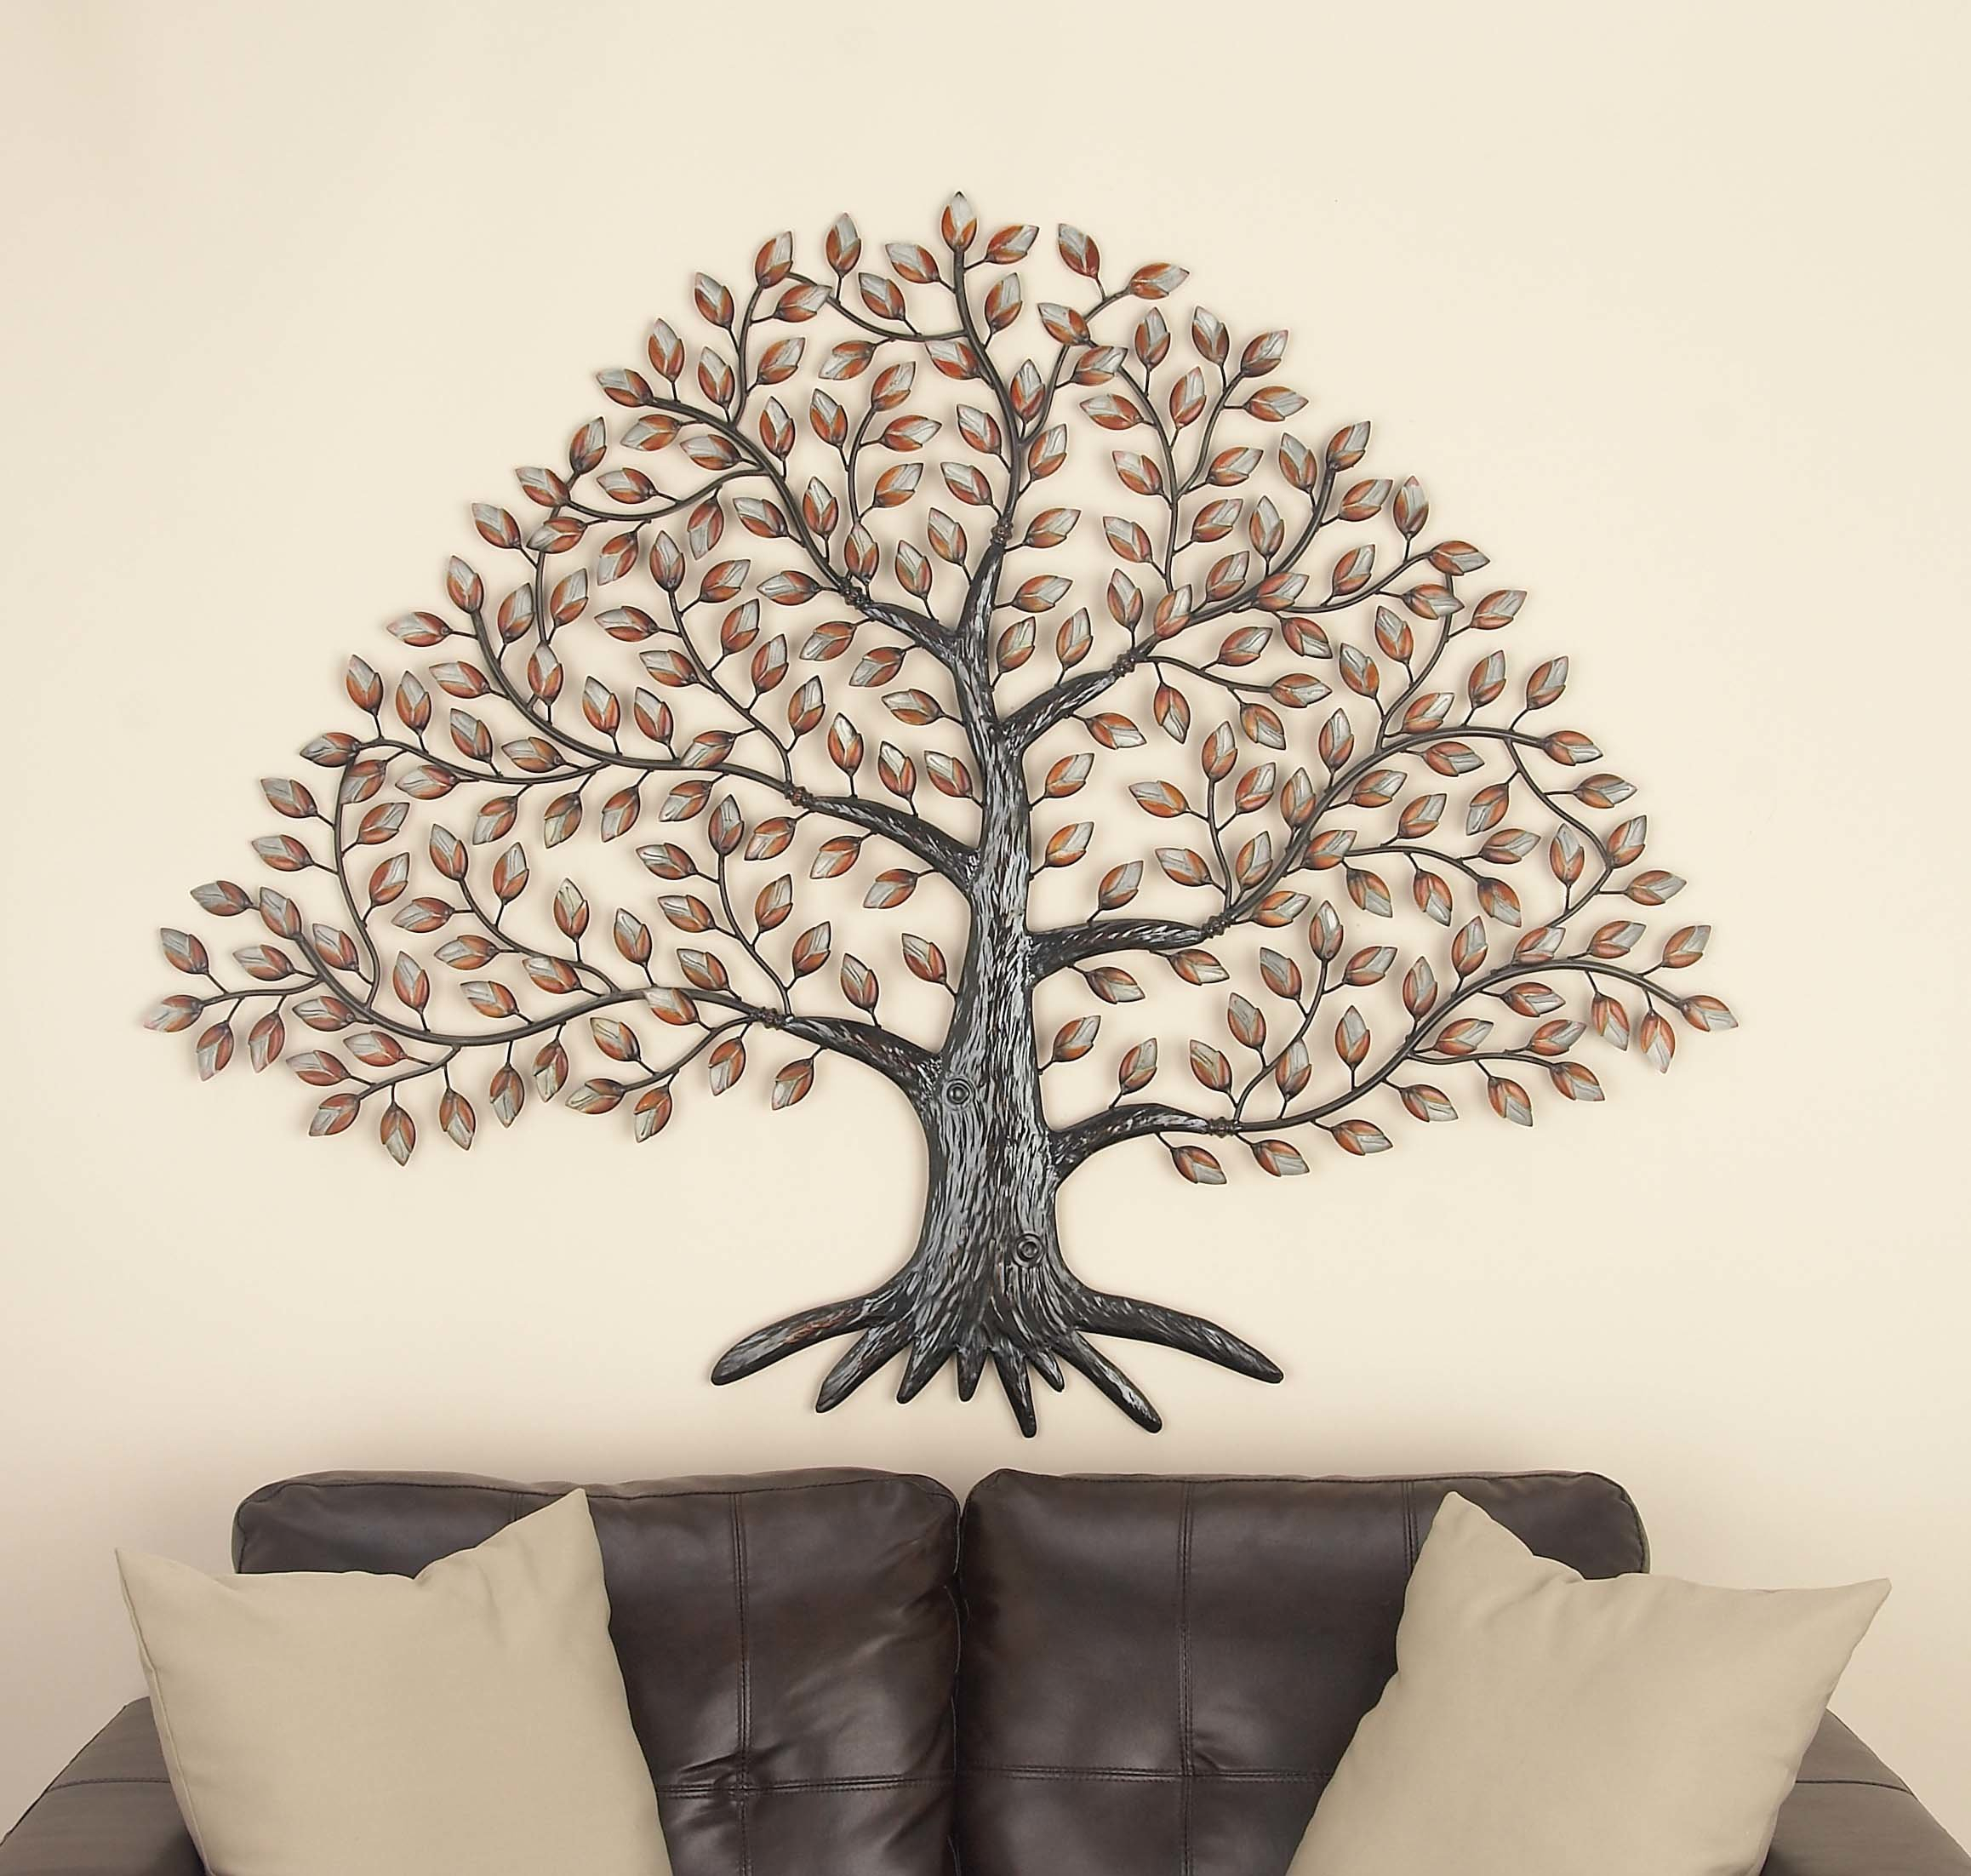 Windswept Tree Wall Decor | Wayfair For Windswept Tree Wall Decor (View 17 of 30)